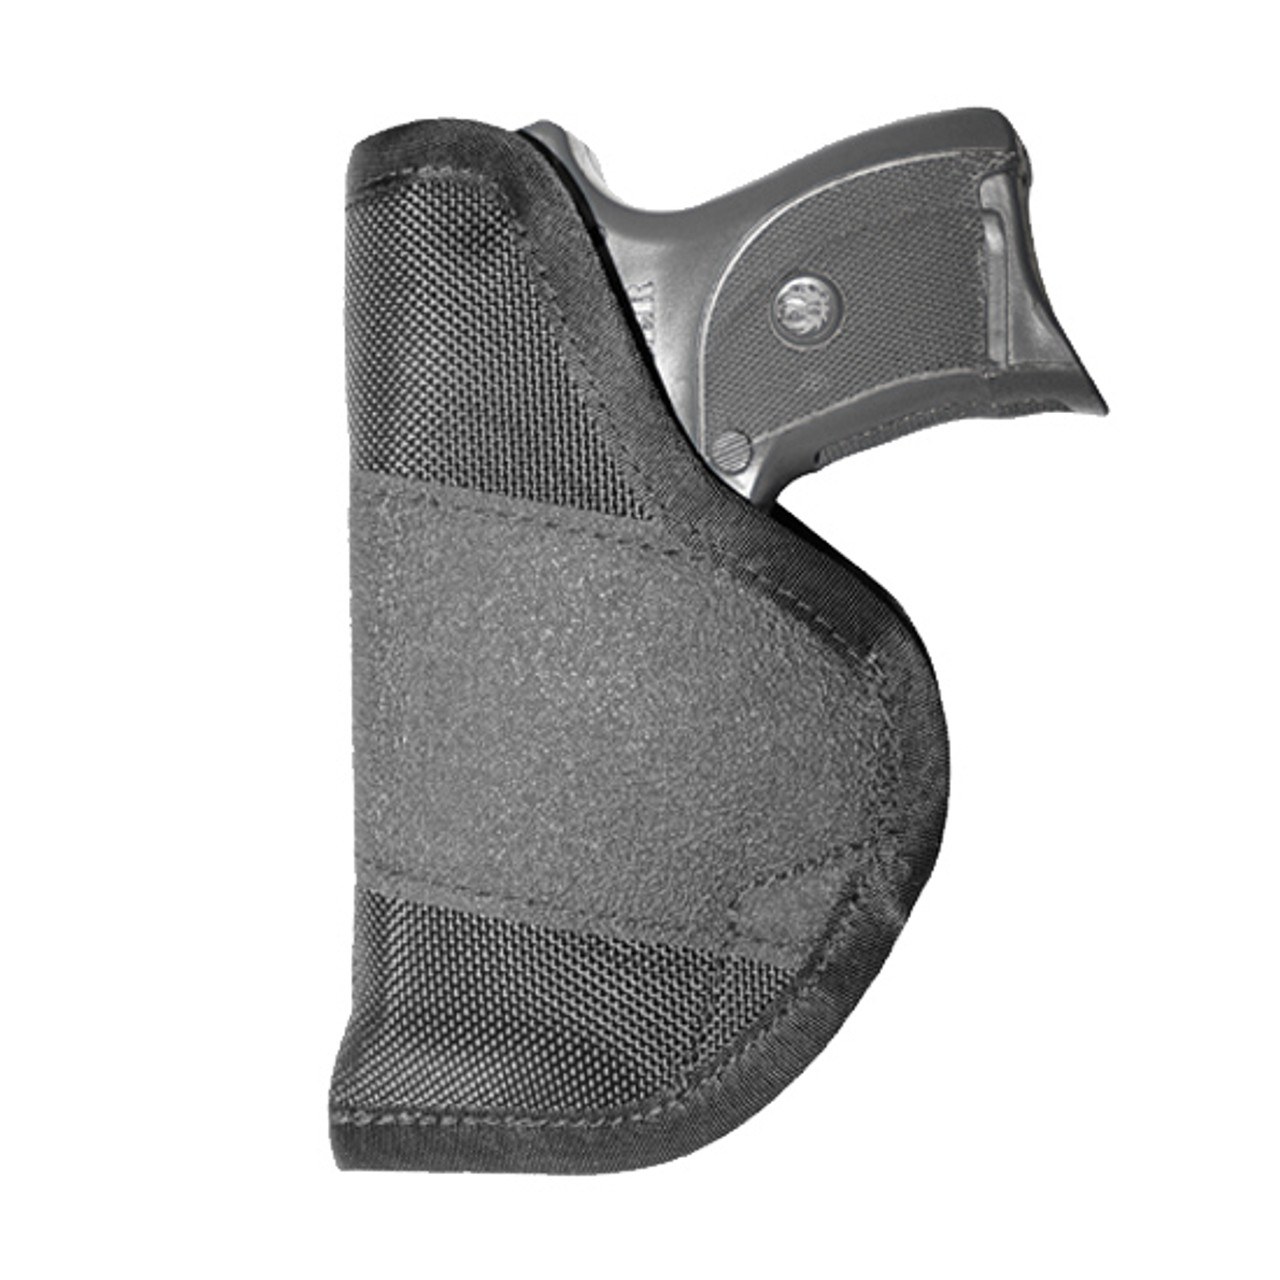 'The Grip' Sub-Compact  2 - 2.5 INCH IWB or Pocket Holster by Crossfire - NEW